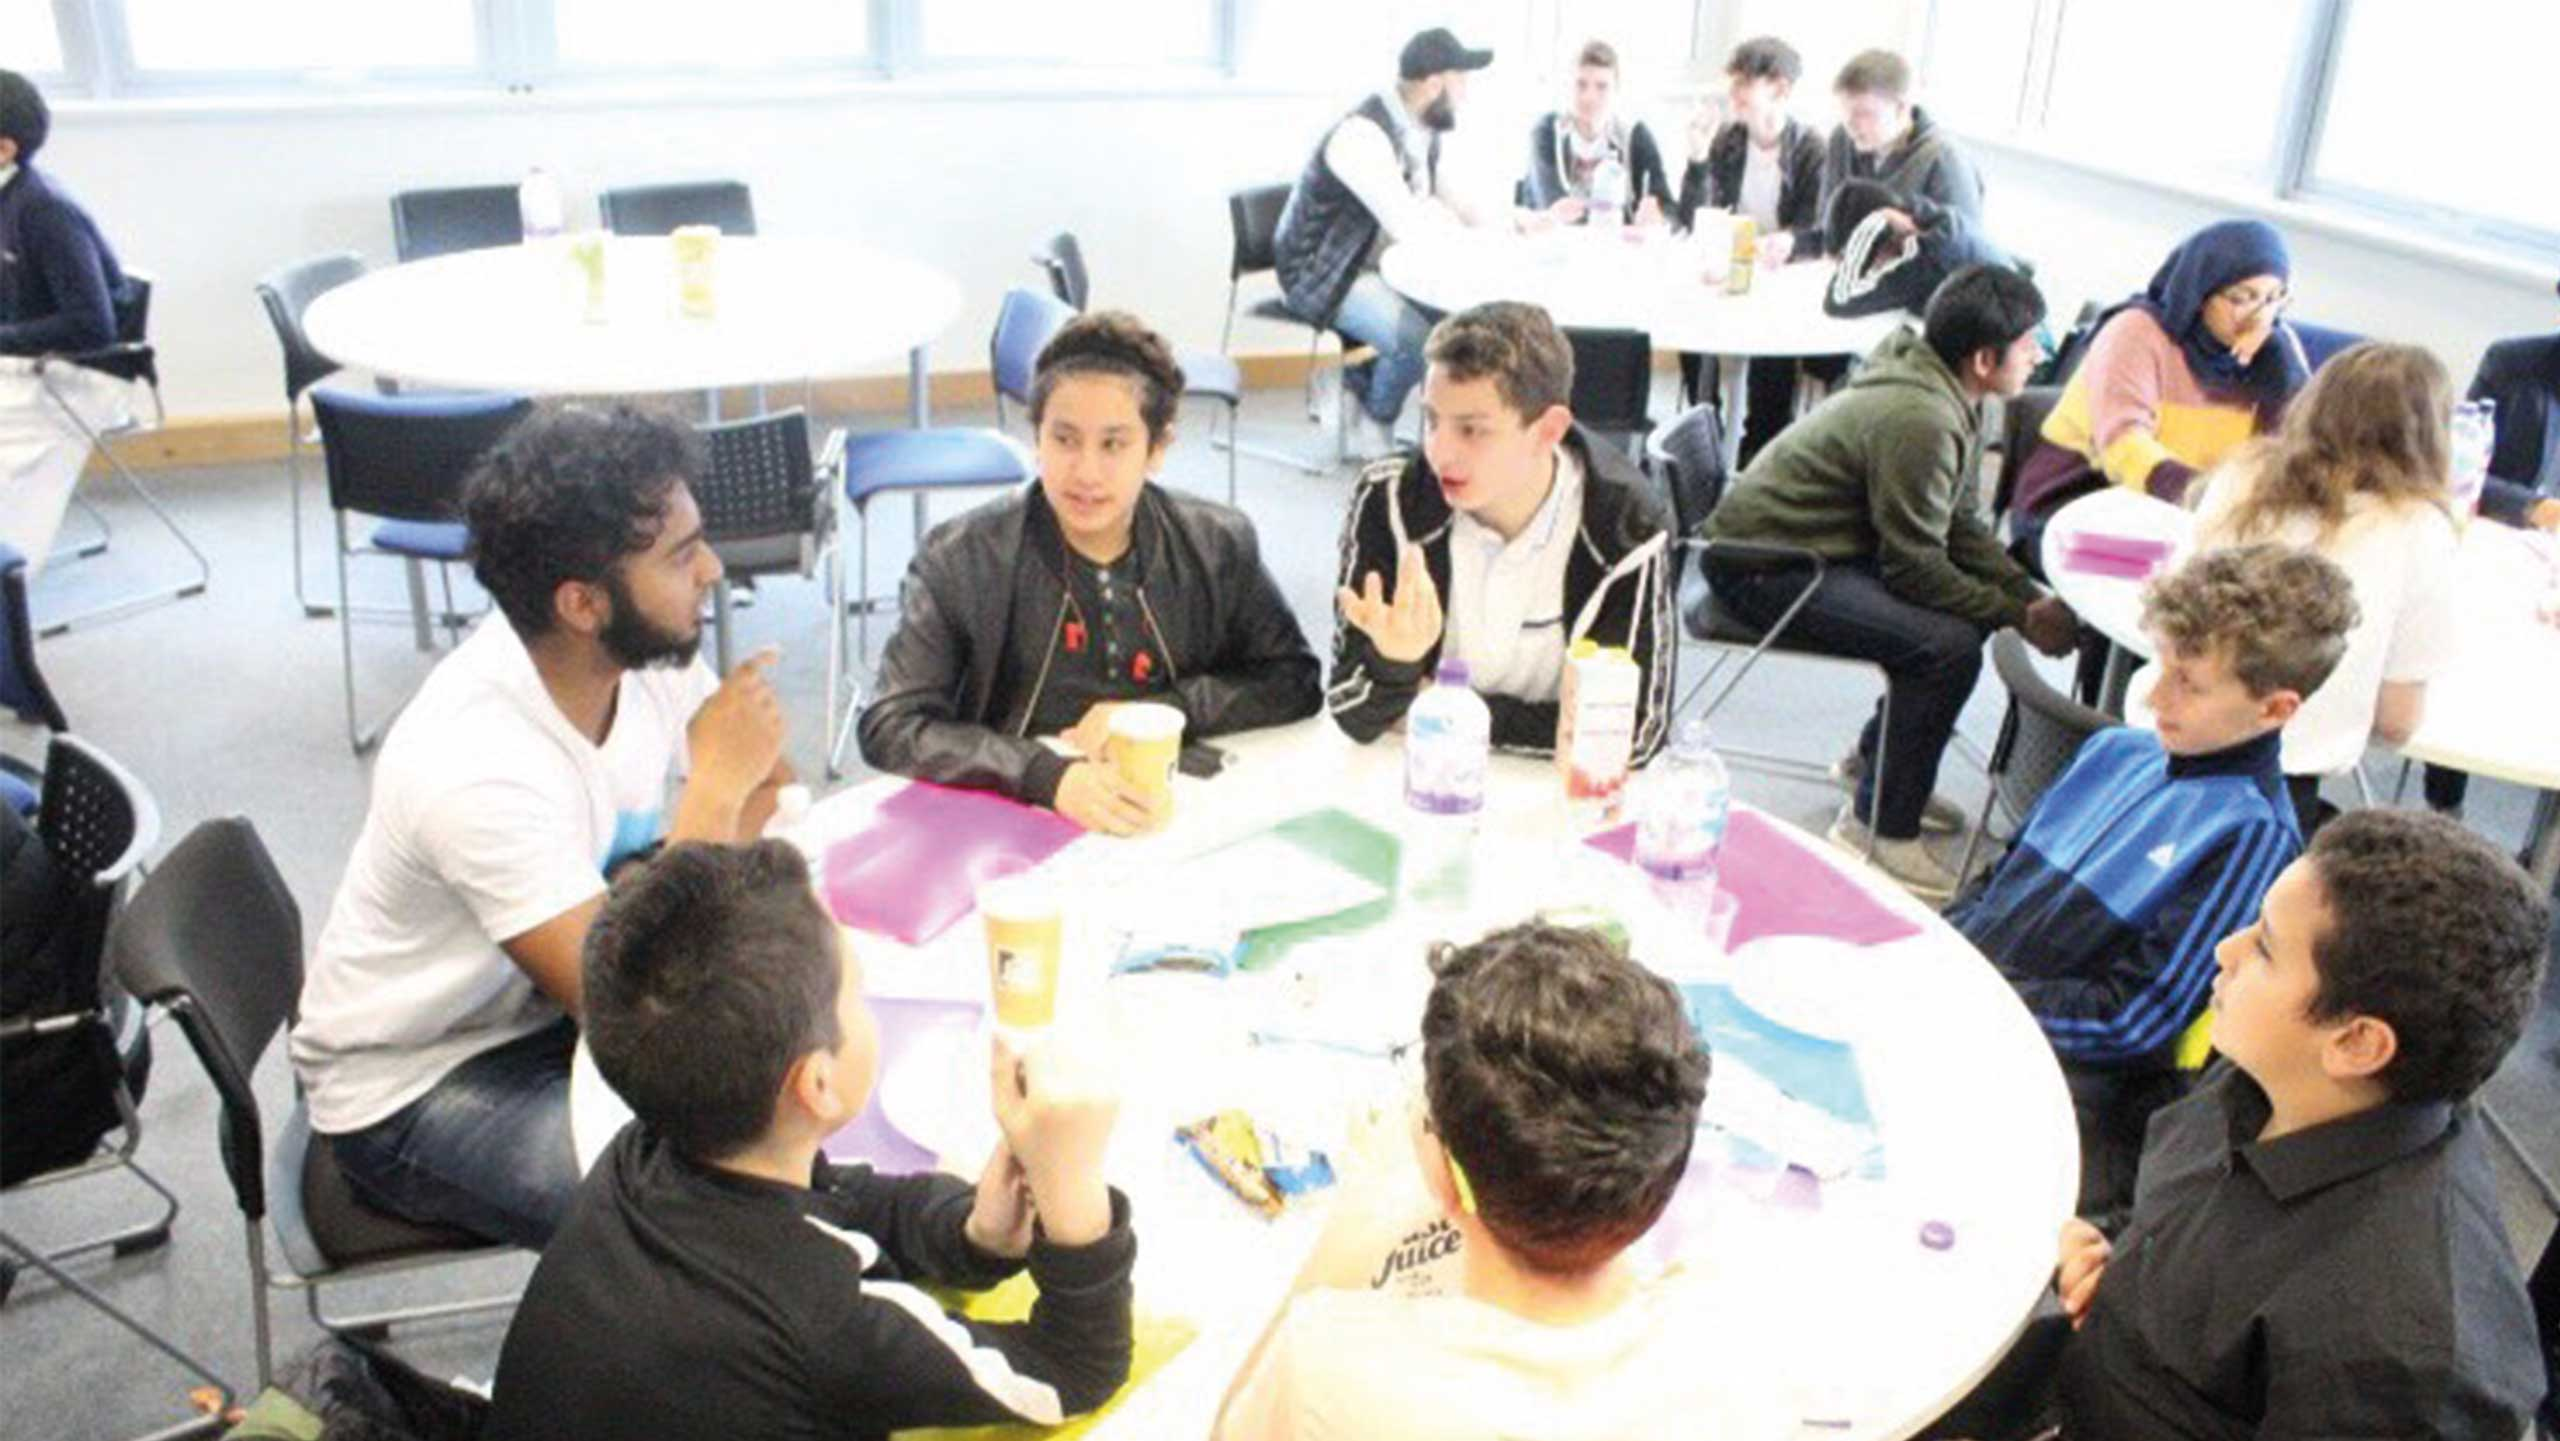 tables with young people sitting around discussing ideas for their dragons den style pitch